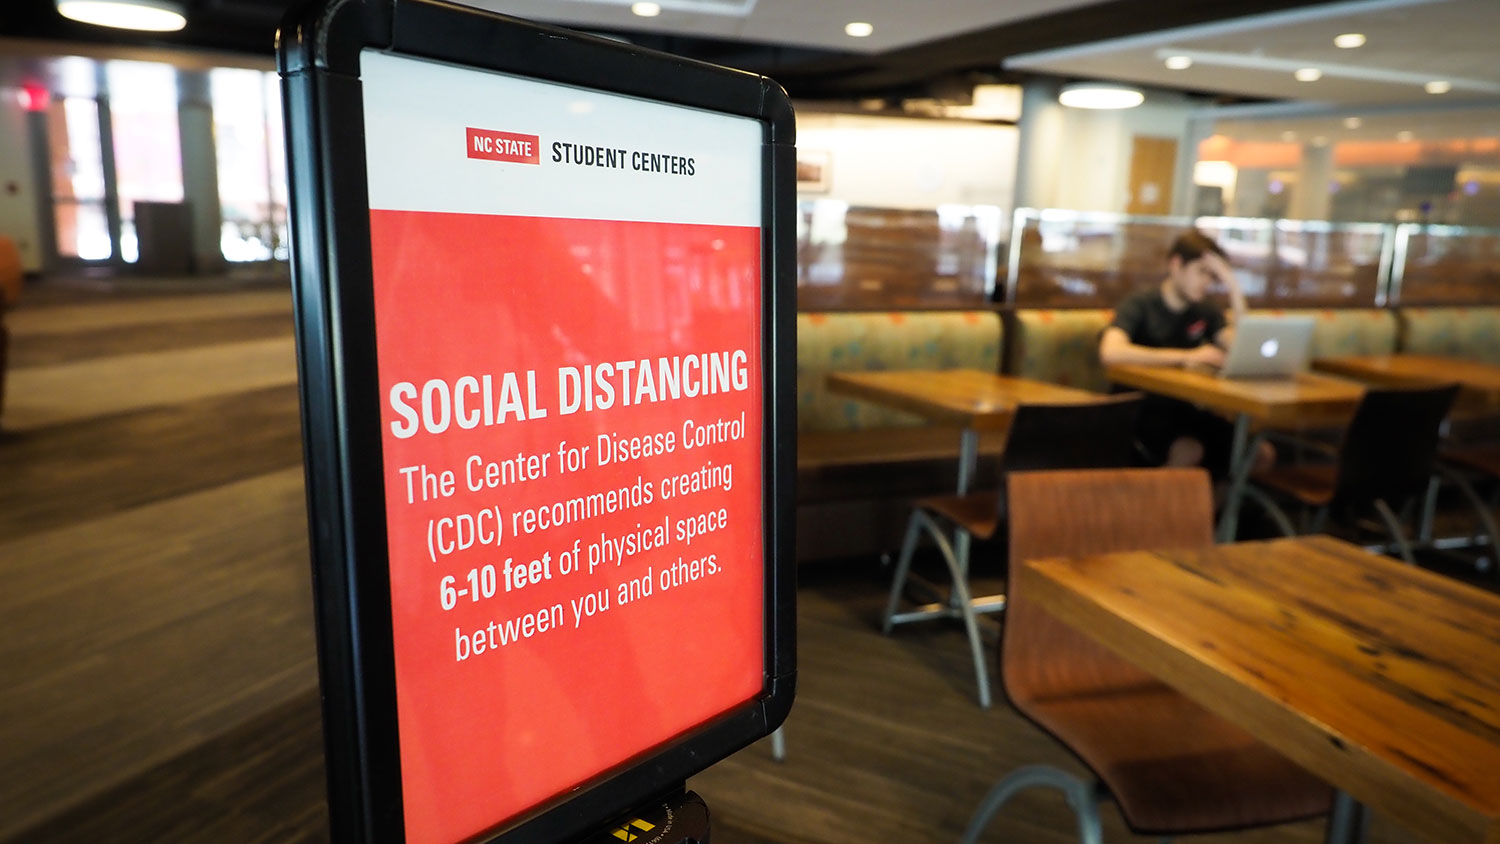 A social distancing sign at Talley Student Union during the COVID-19 outbreak